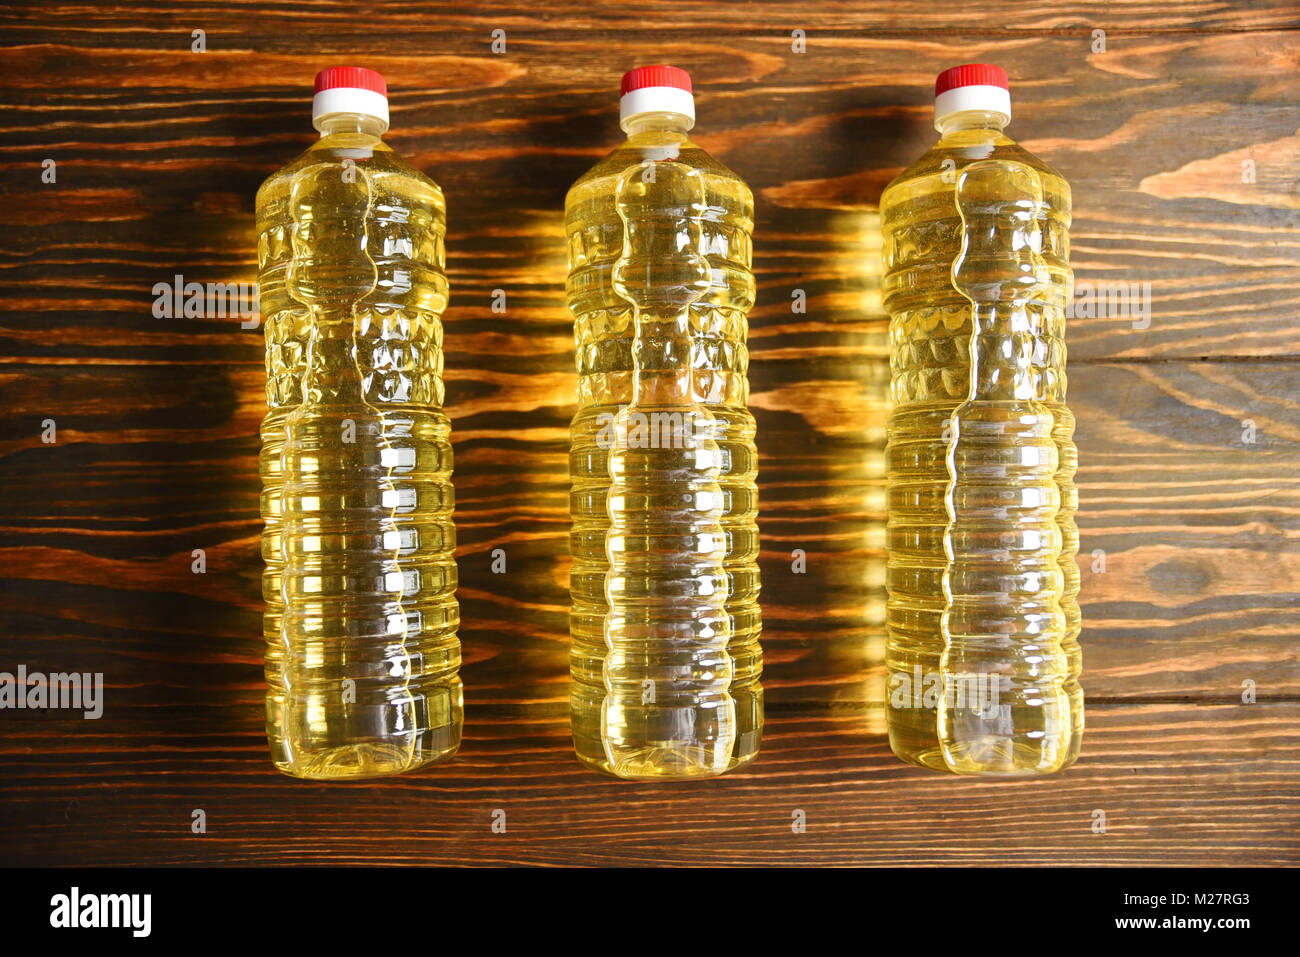 plastic bottles with sunflower oil on a wooden background - Stock Image